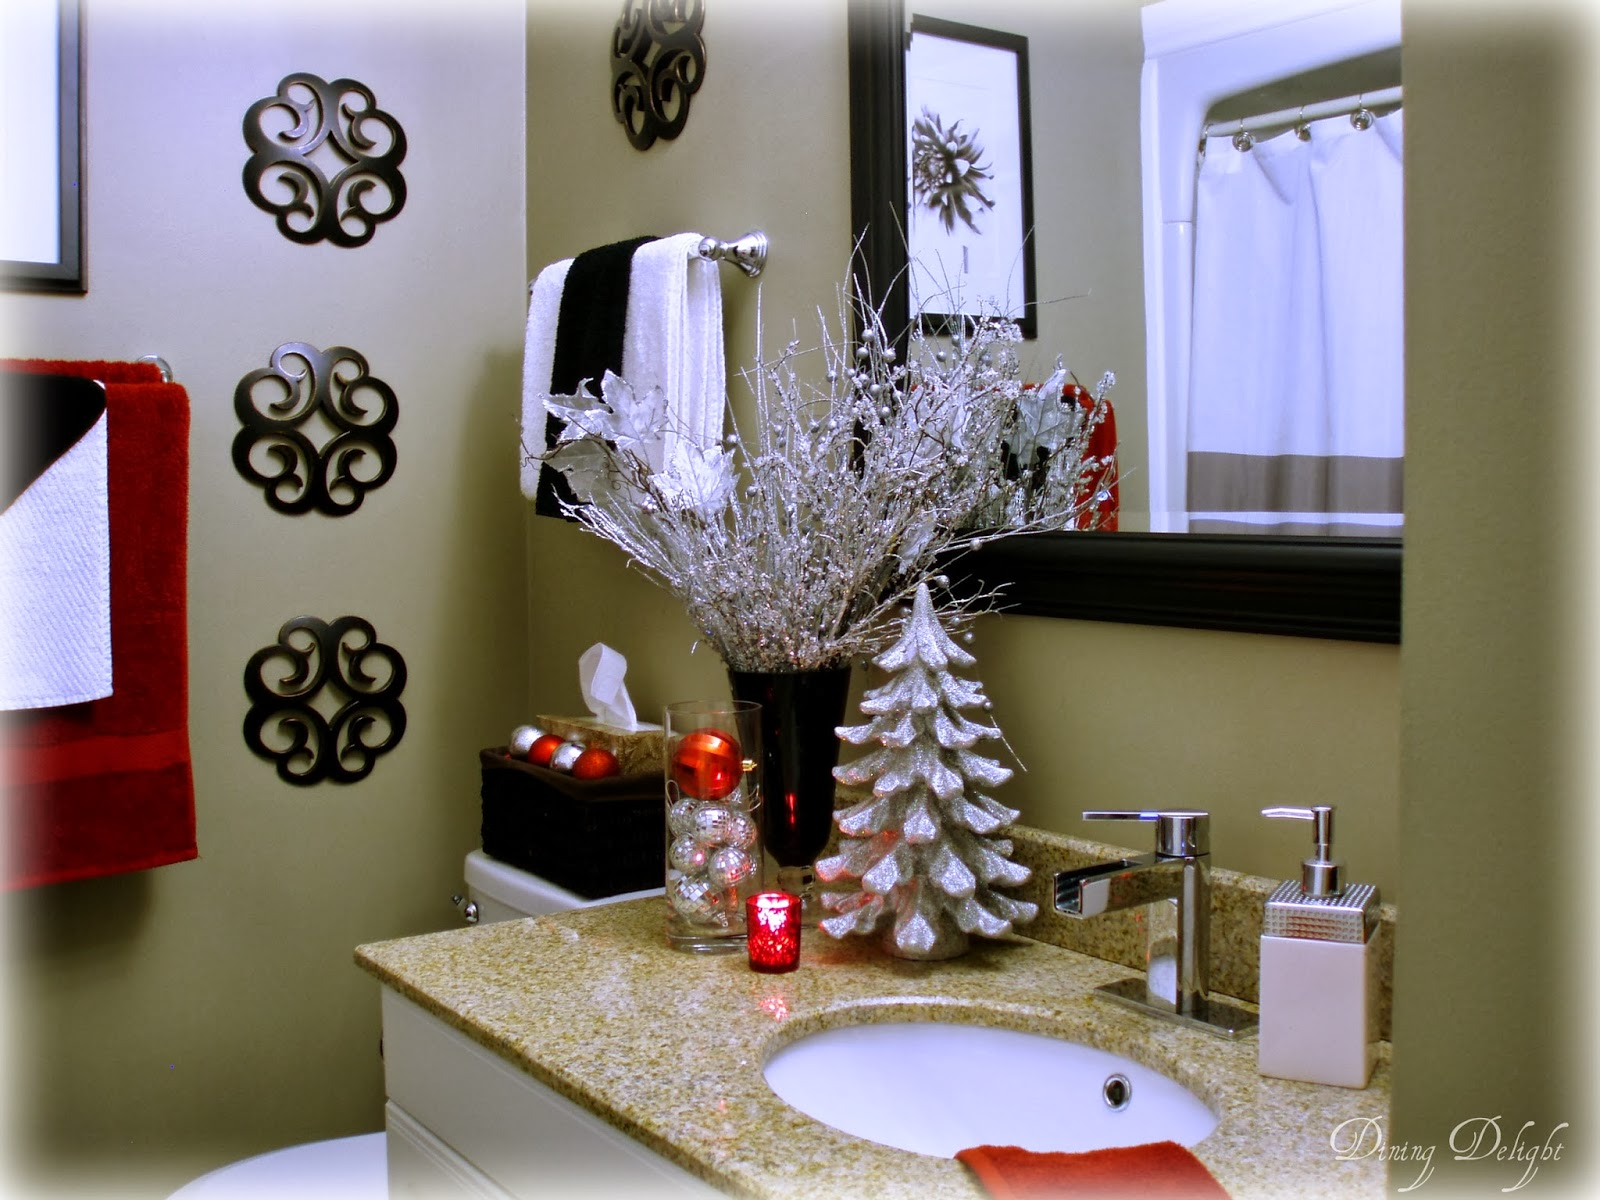 Best Dining Delight Christmas Home Tour 2013 This Month